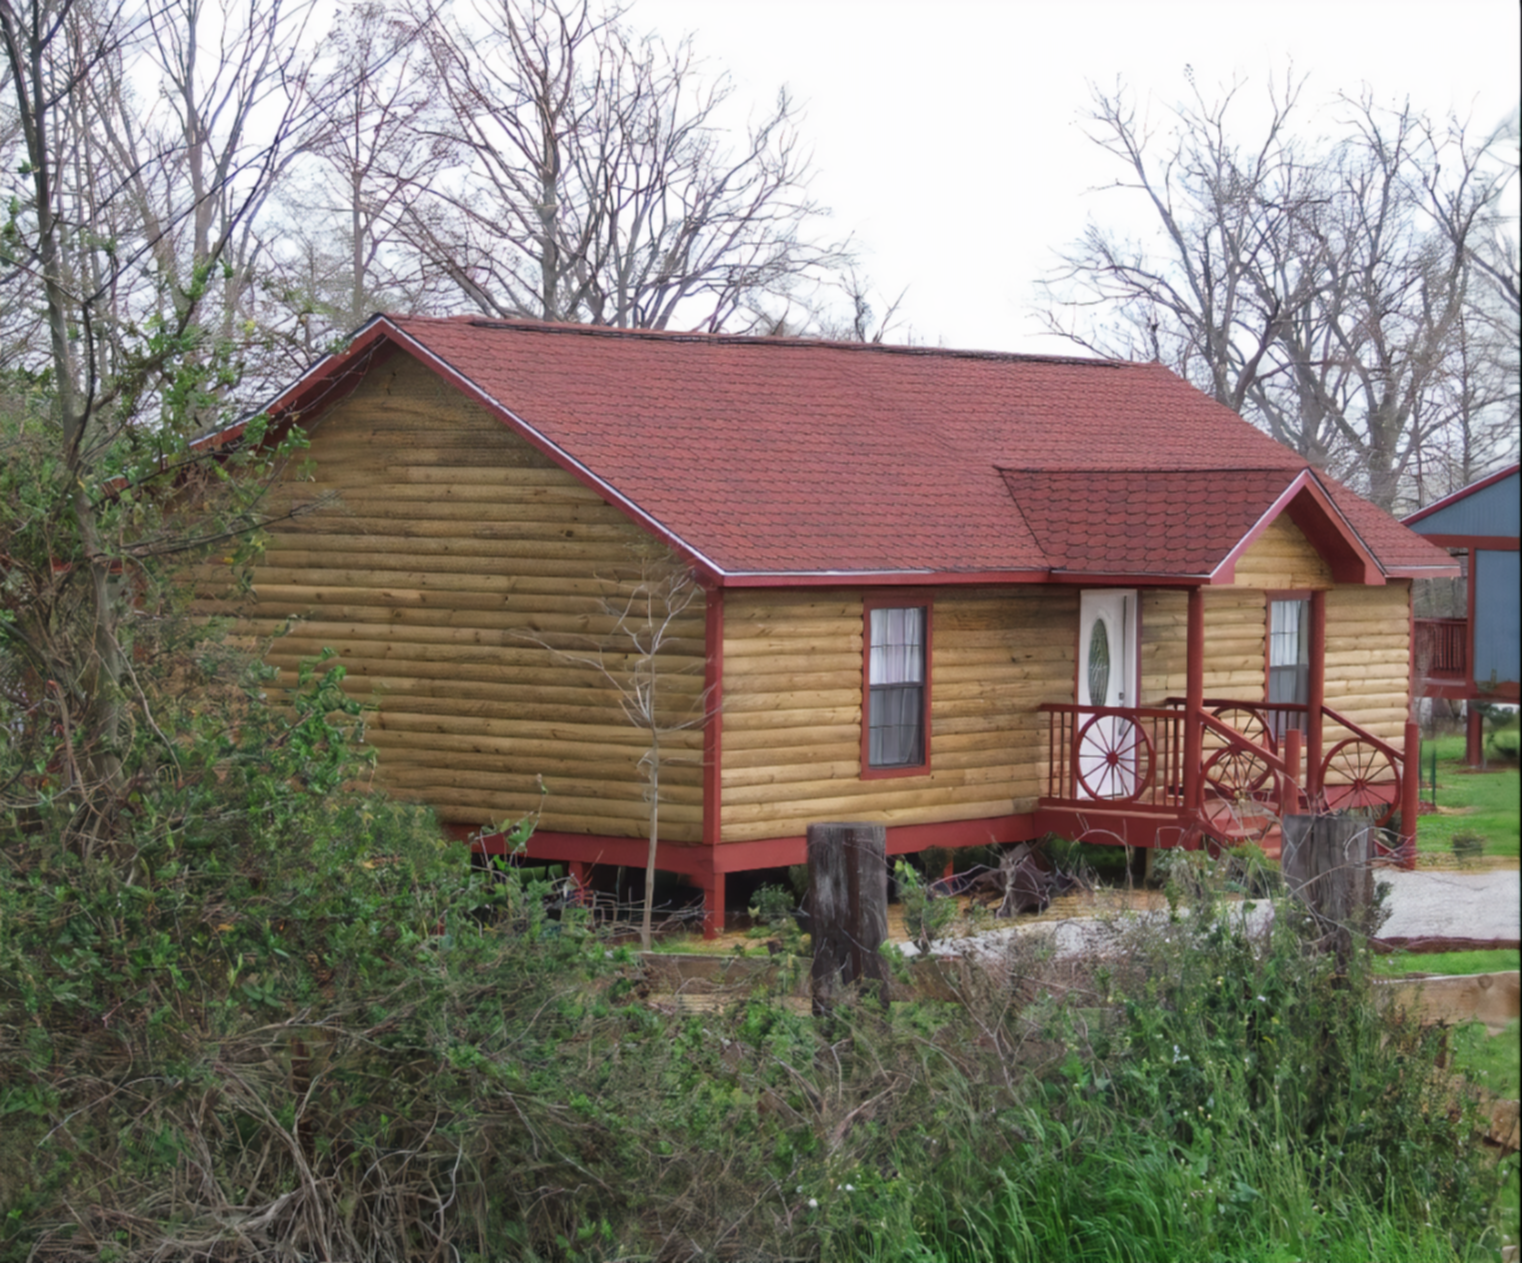 A wooden house at Susan's Cottages.